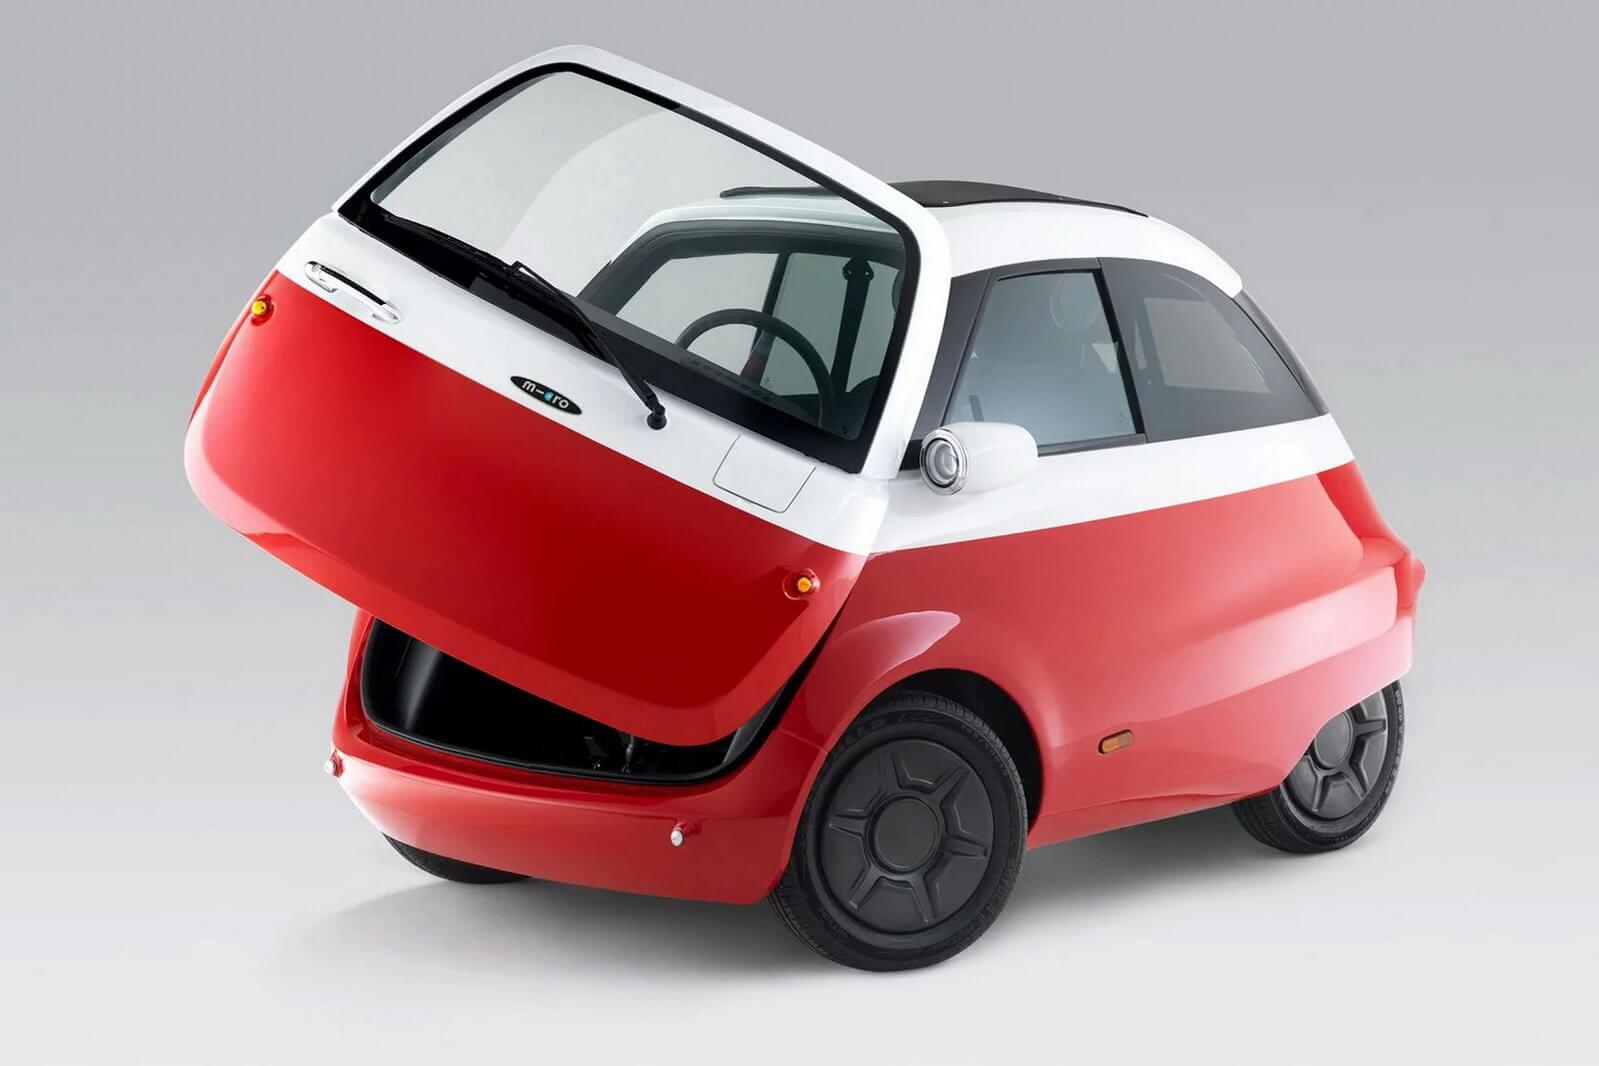 Present-Day Version Of The BMW Isetta Bubble Car Goes Into Production With Electric Powertrain